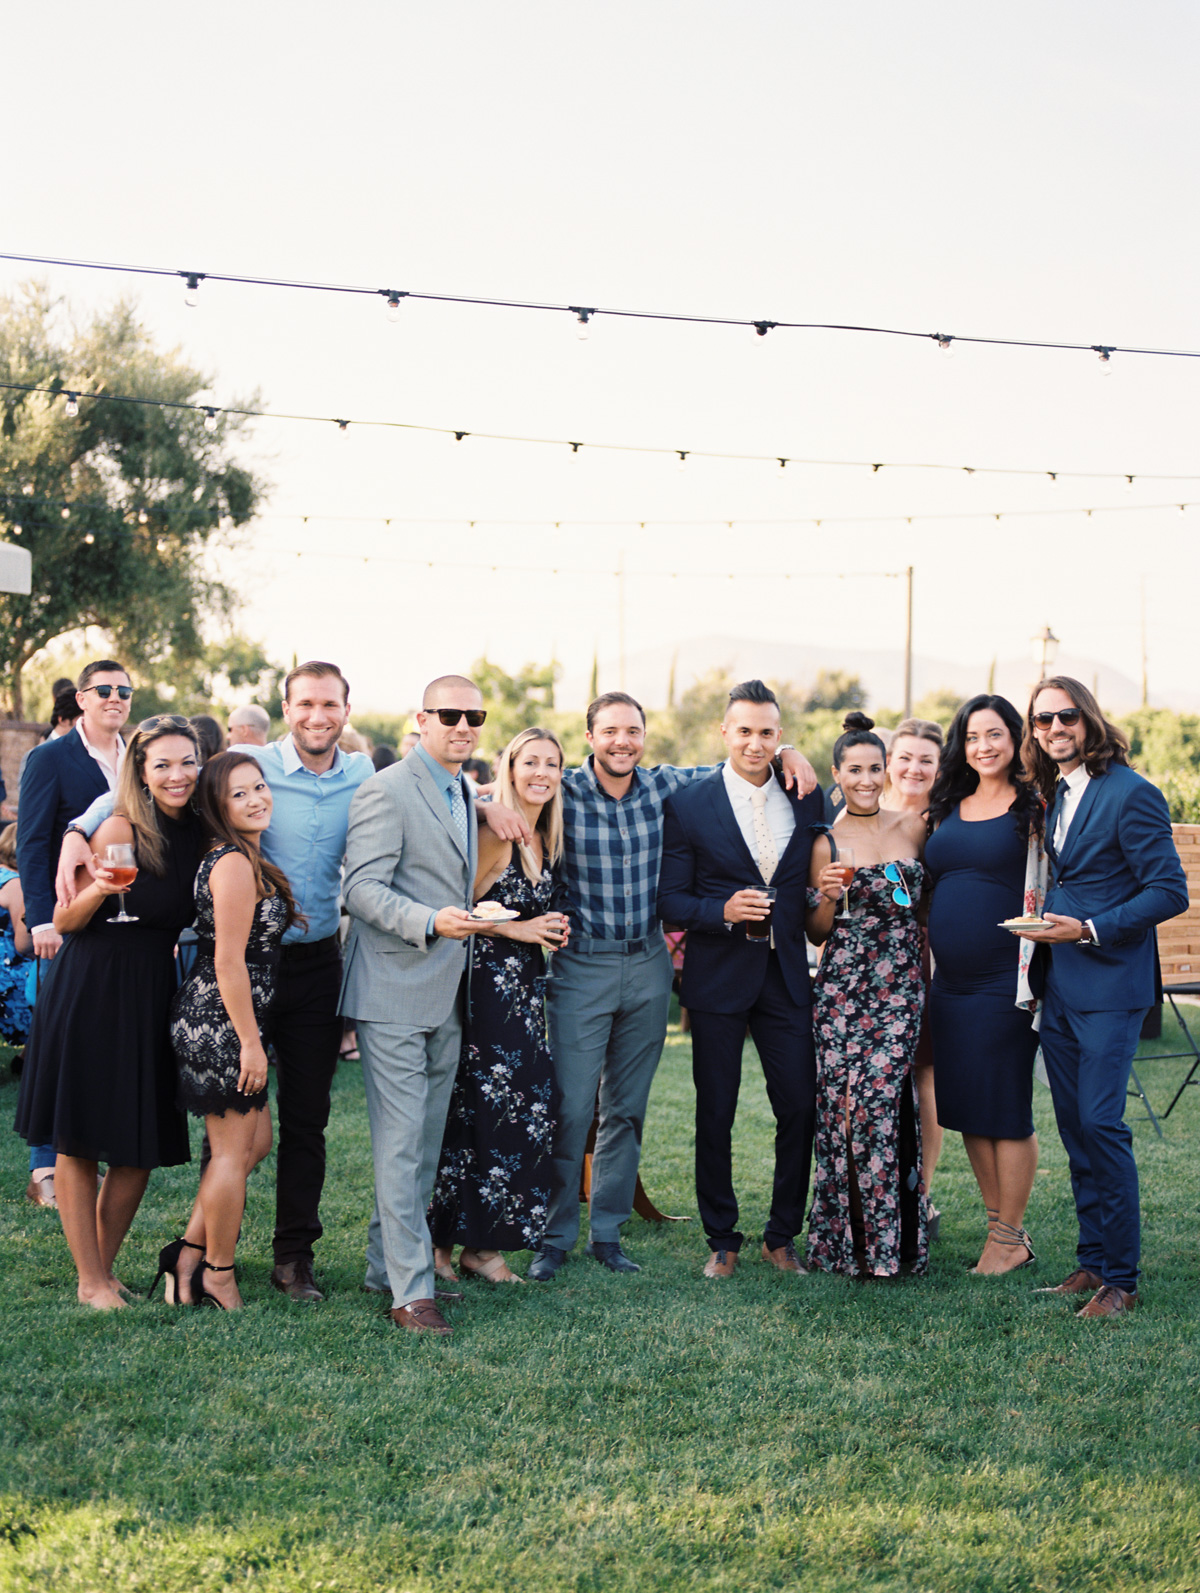 Cocktail Hour |Harrison & Jocelyne's gorgeous Temecula wedding at Wiens Family Cellars captured by Betsy & John Photography